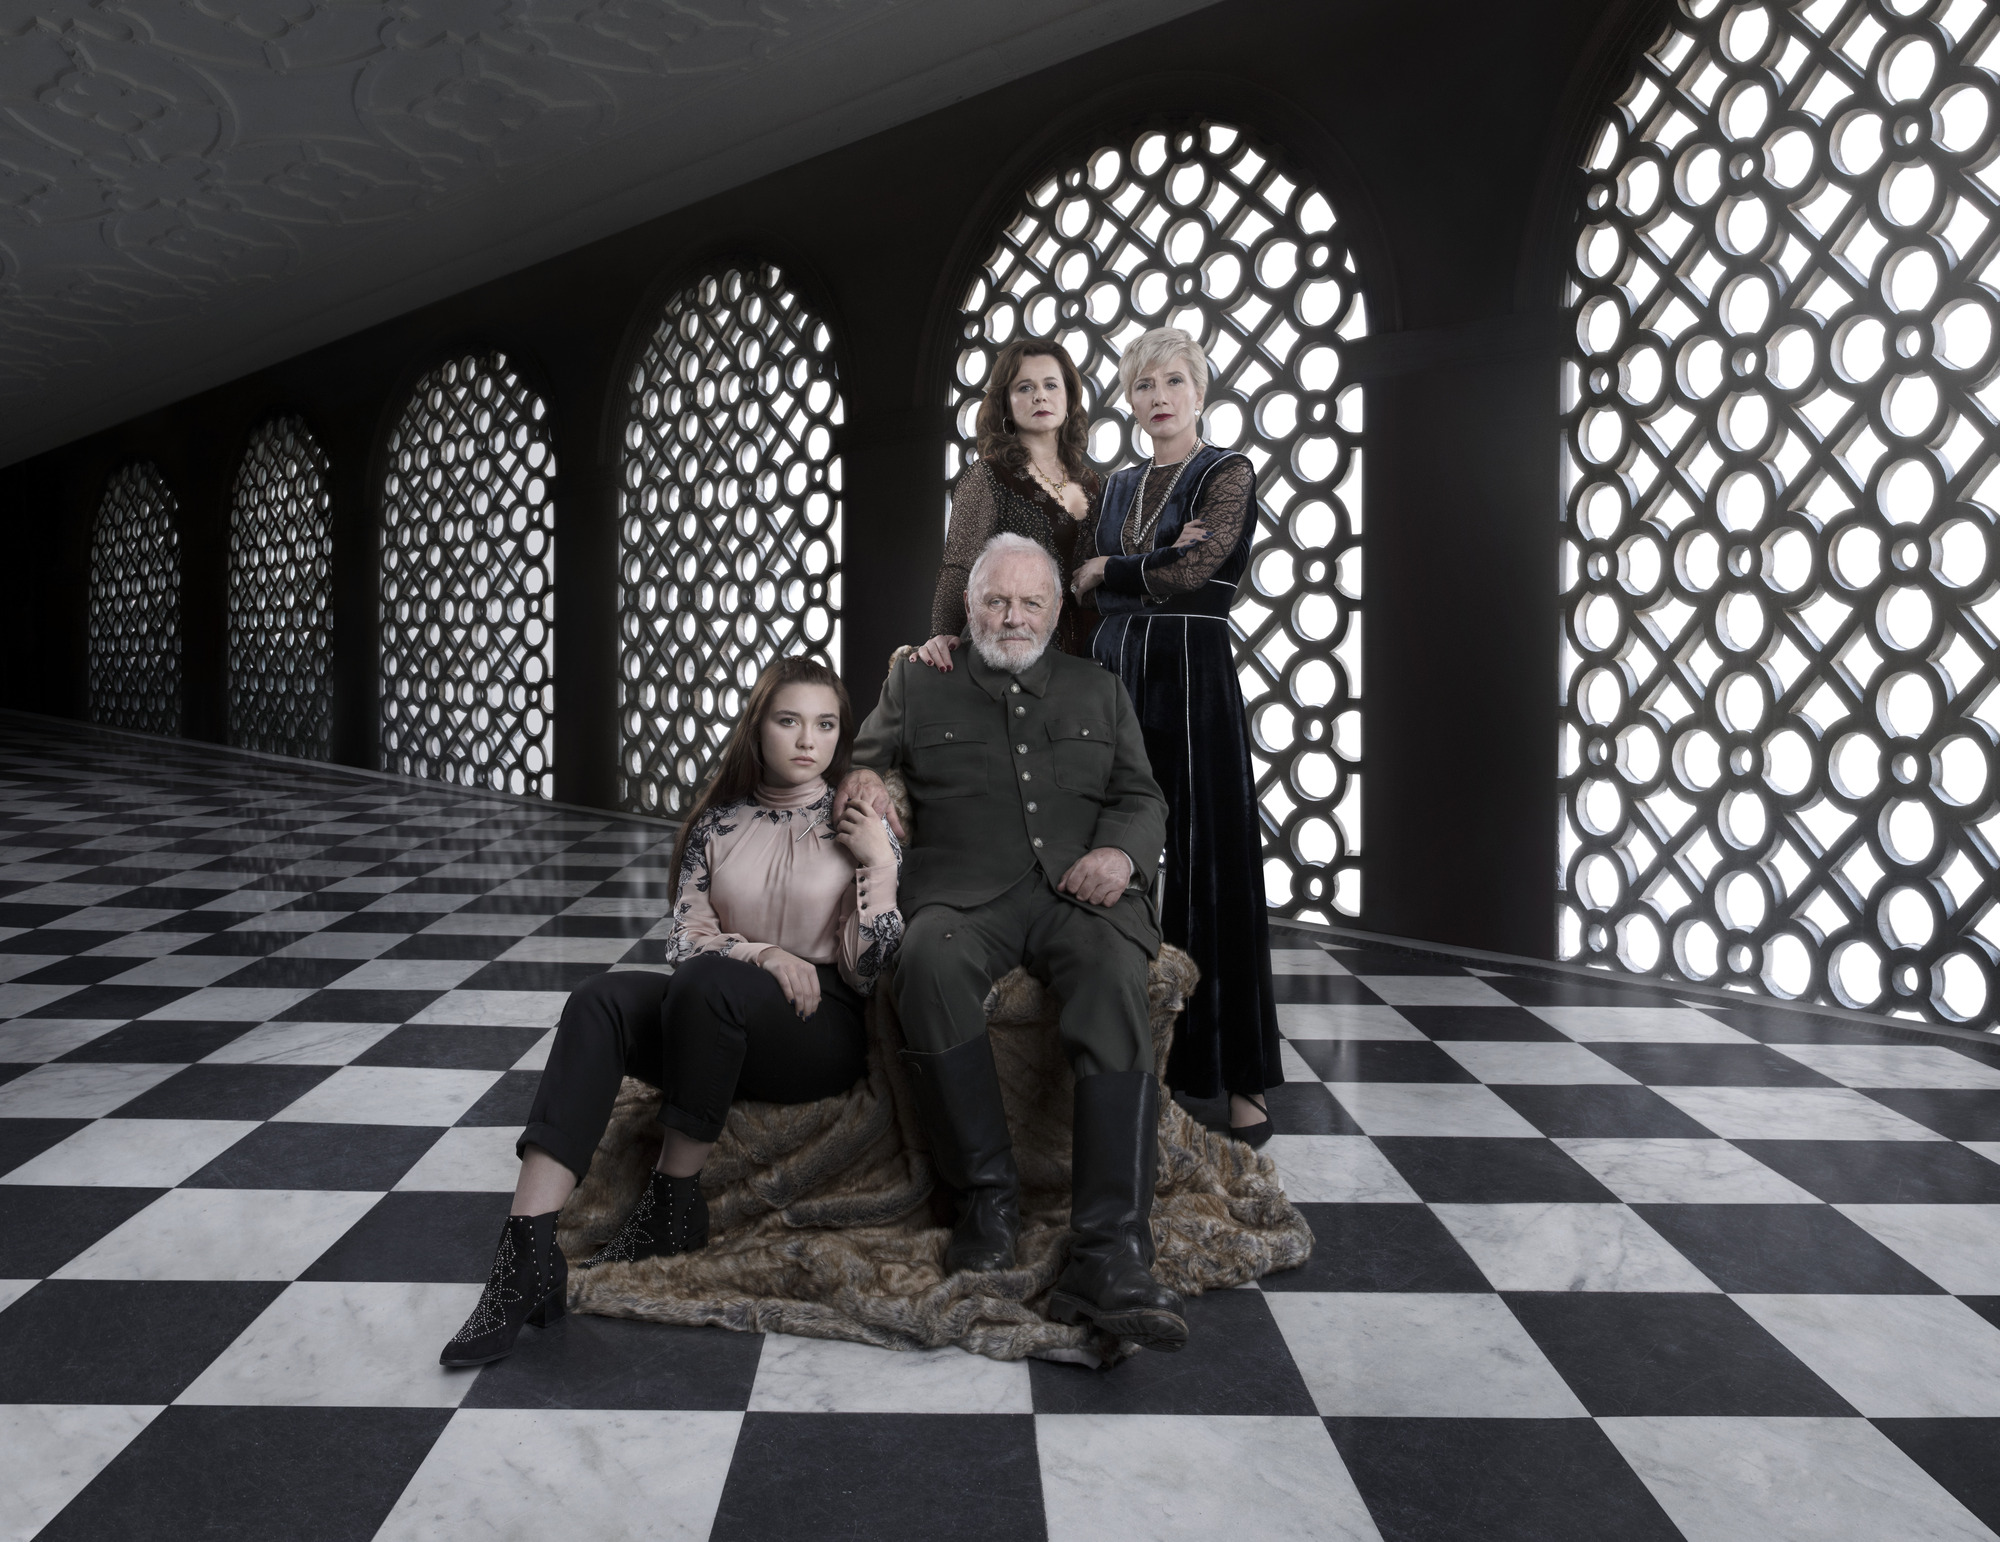 King Lear on his throne as his daughters surround him